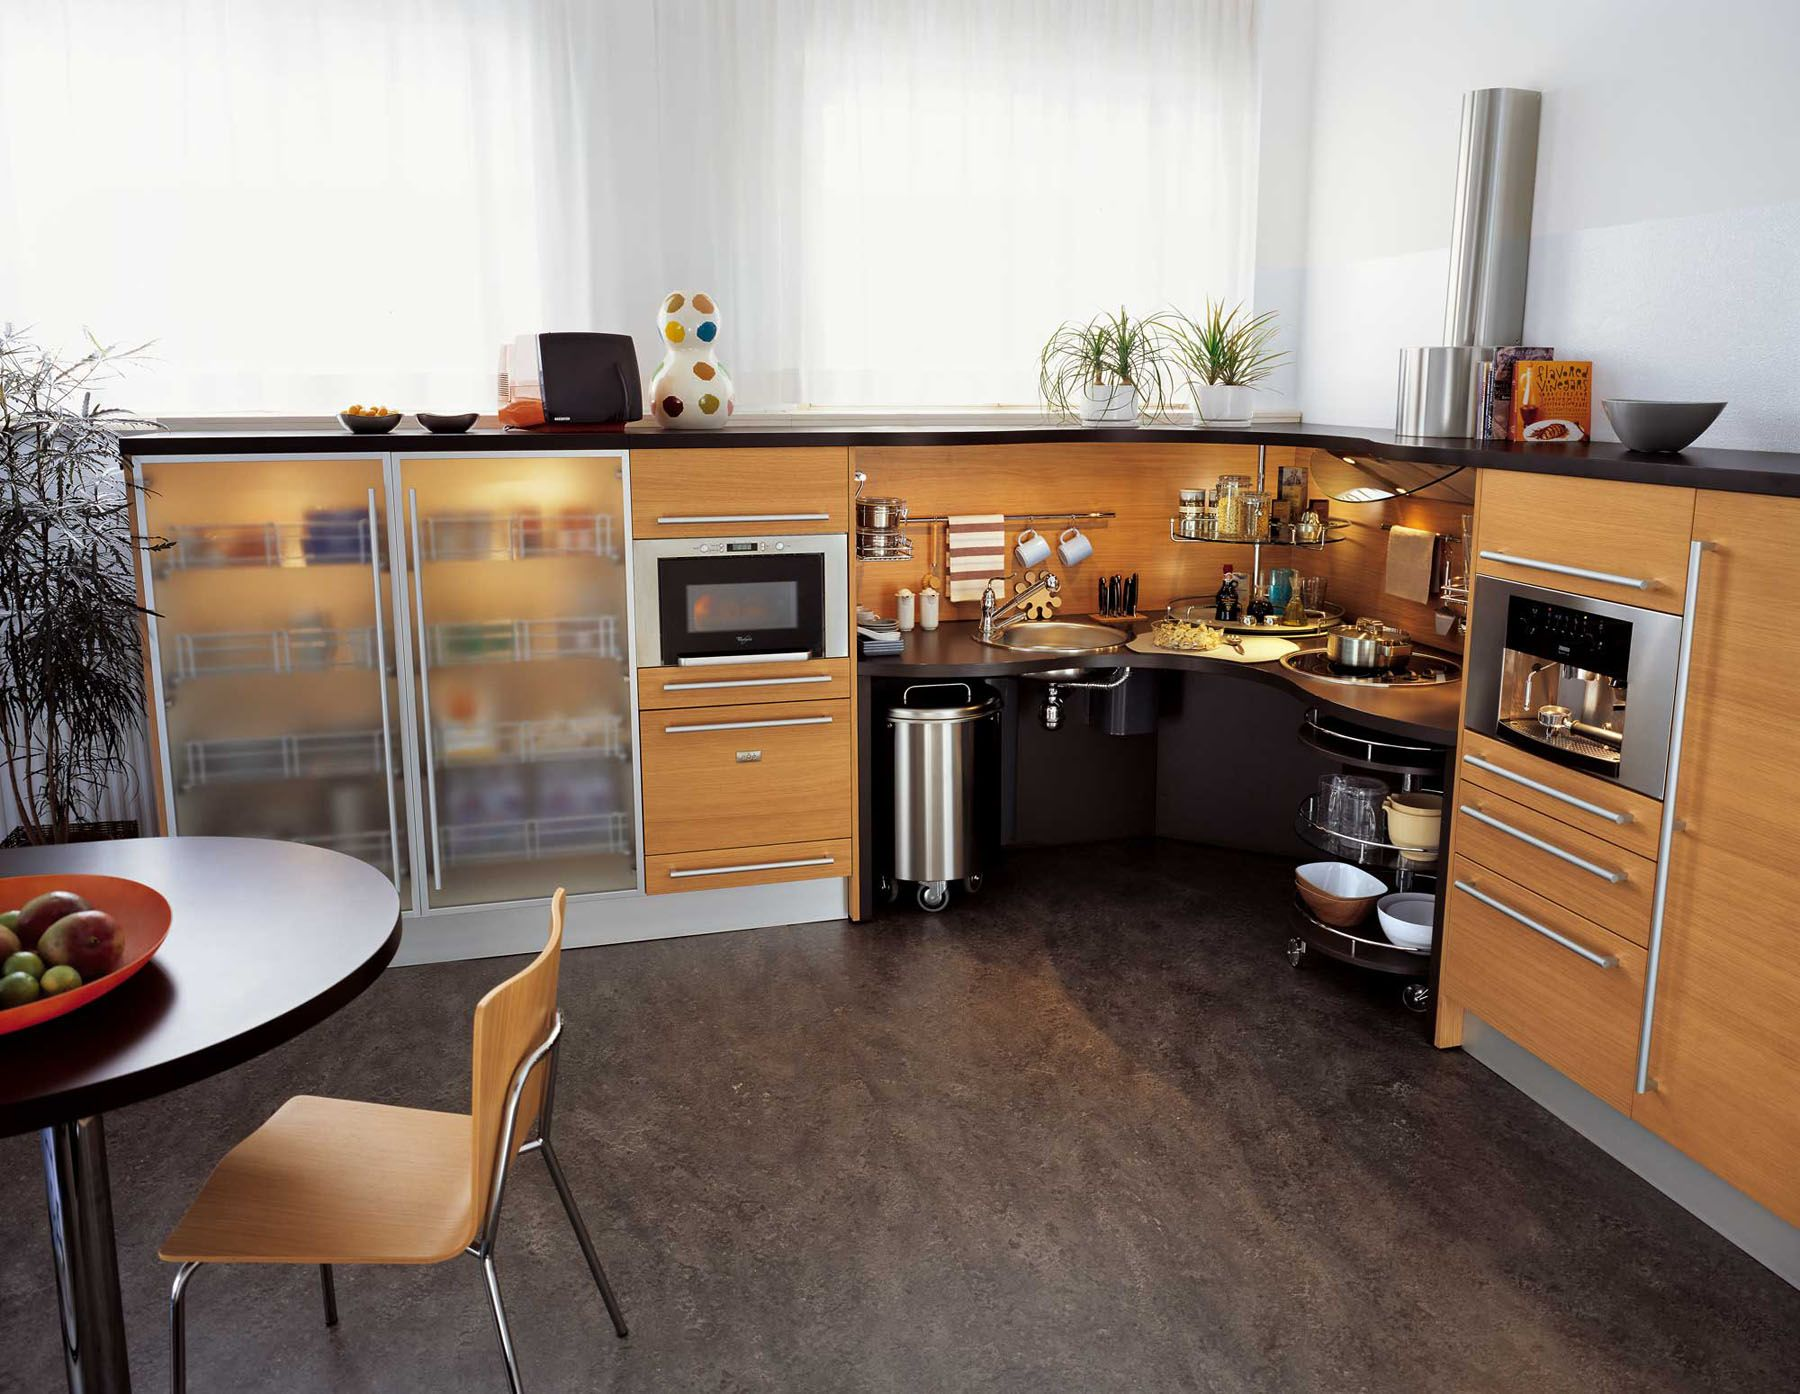 Attractive Ergonomic Italian Kitchen Design Suitable For Wheelchair Users